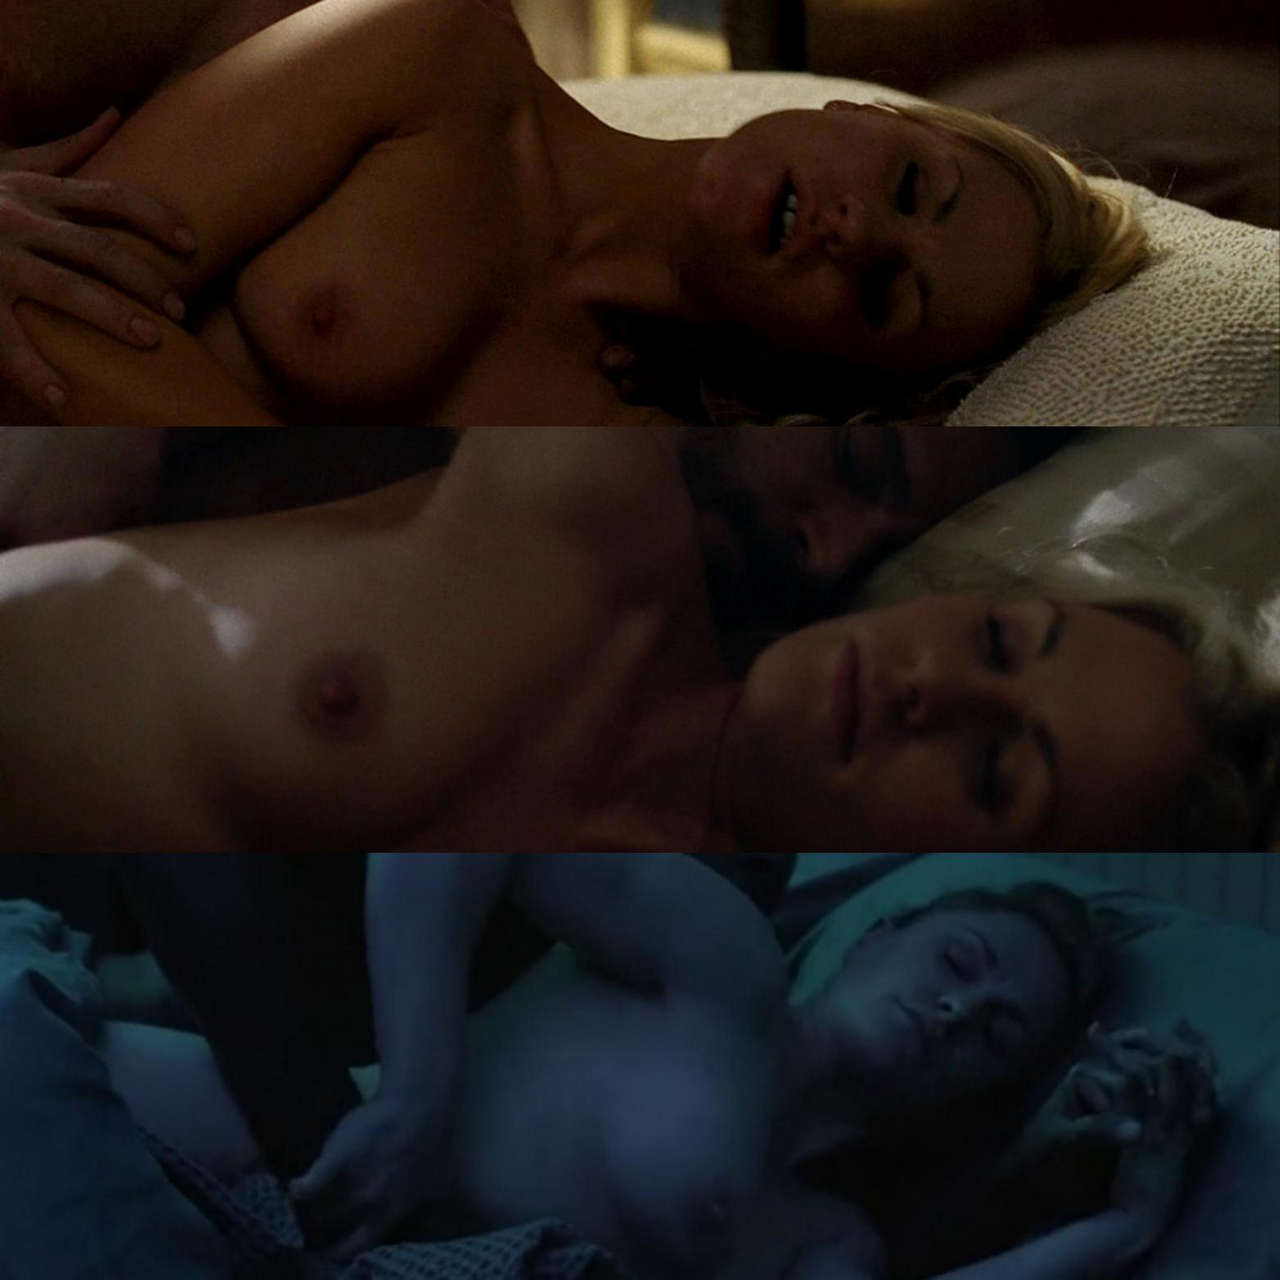 Anna Paquin On Her Side NSFW